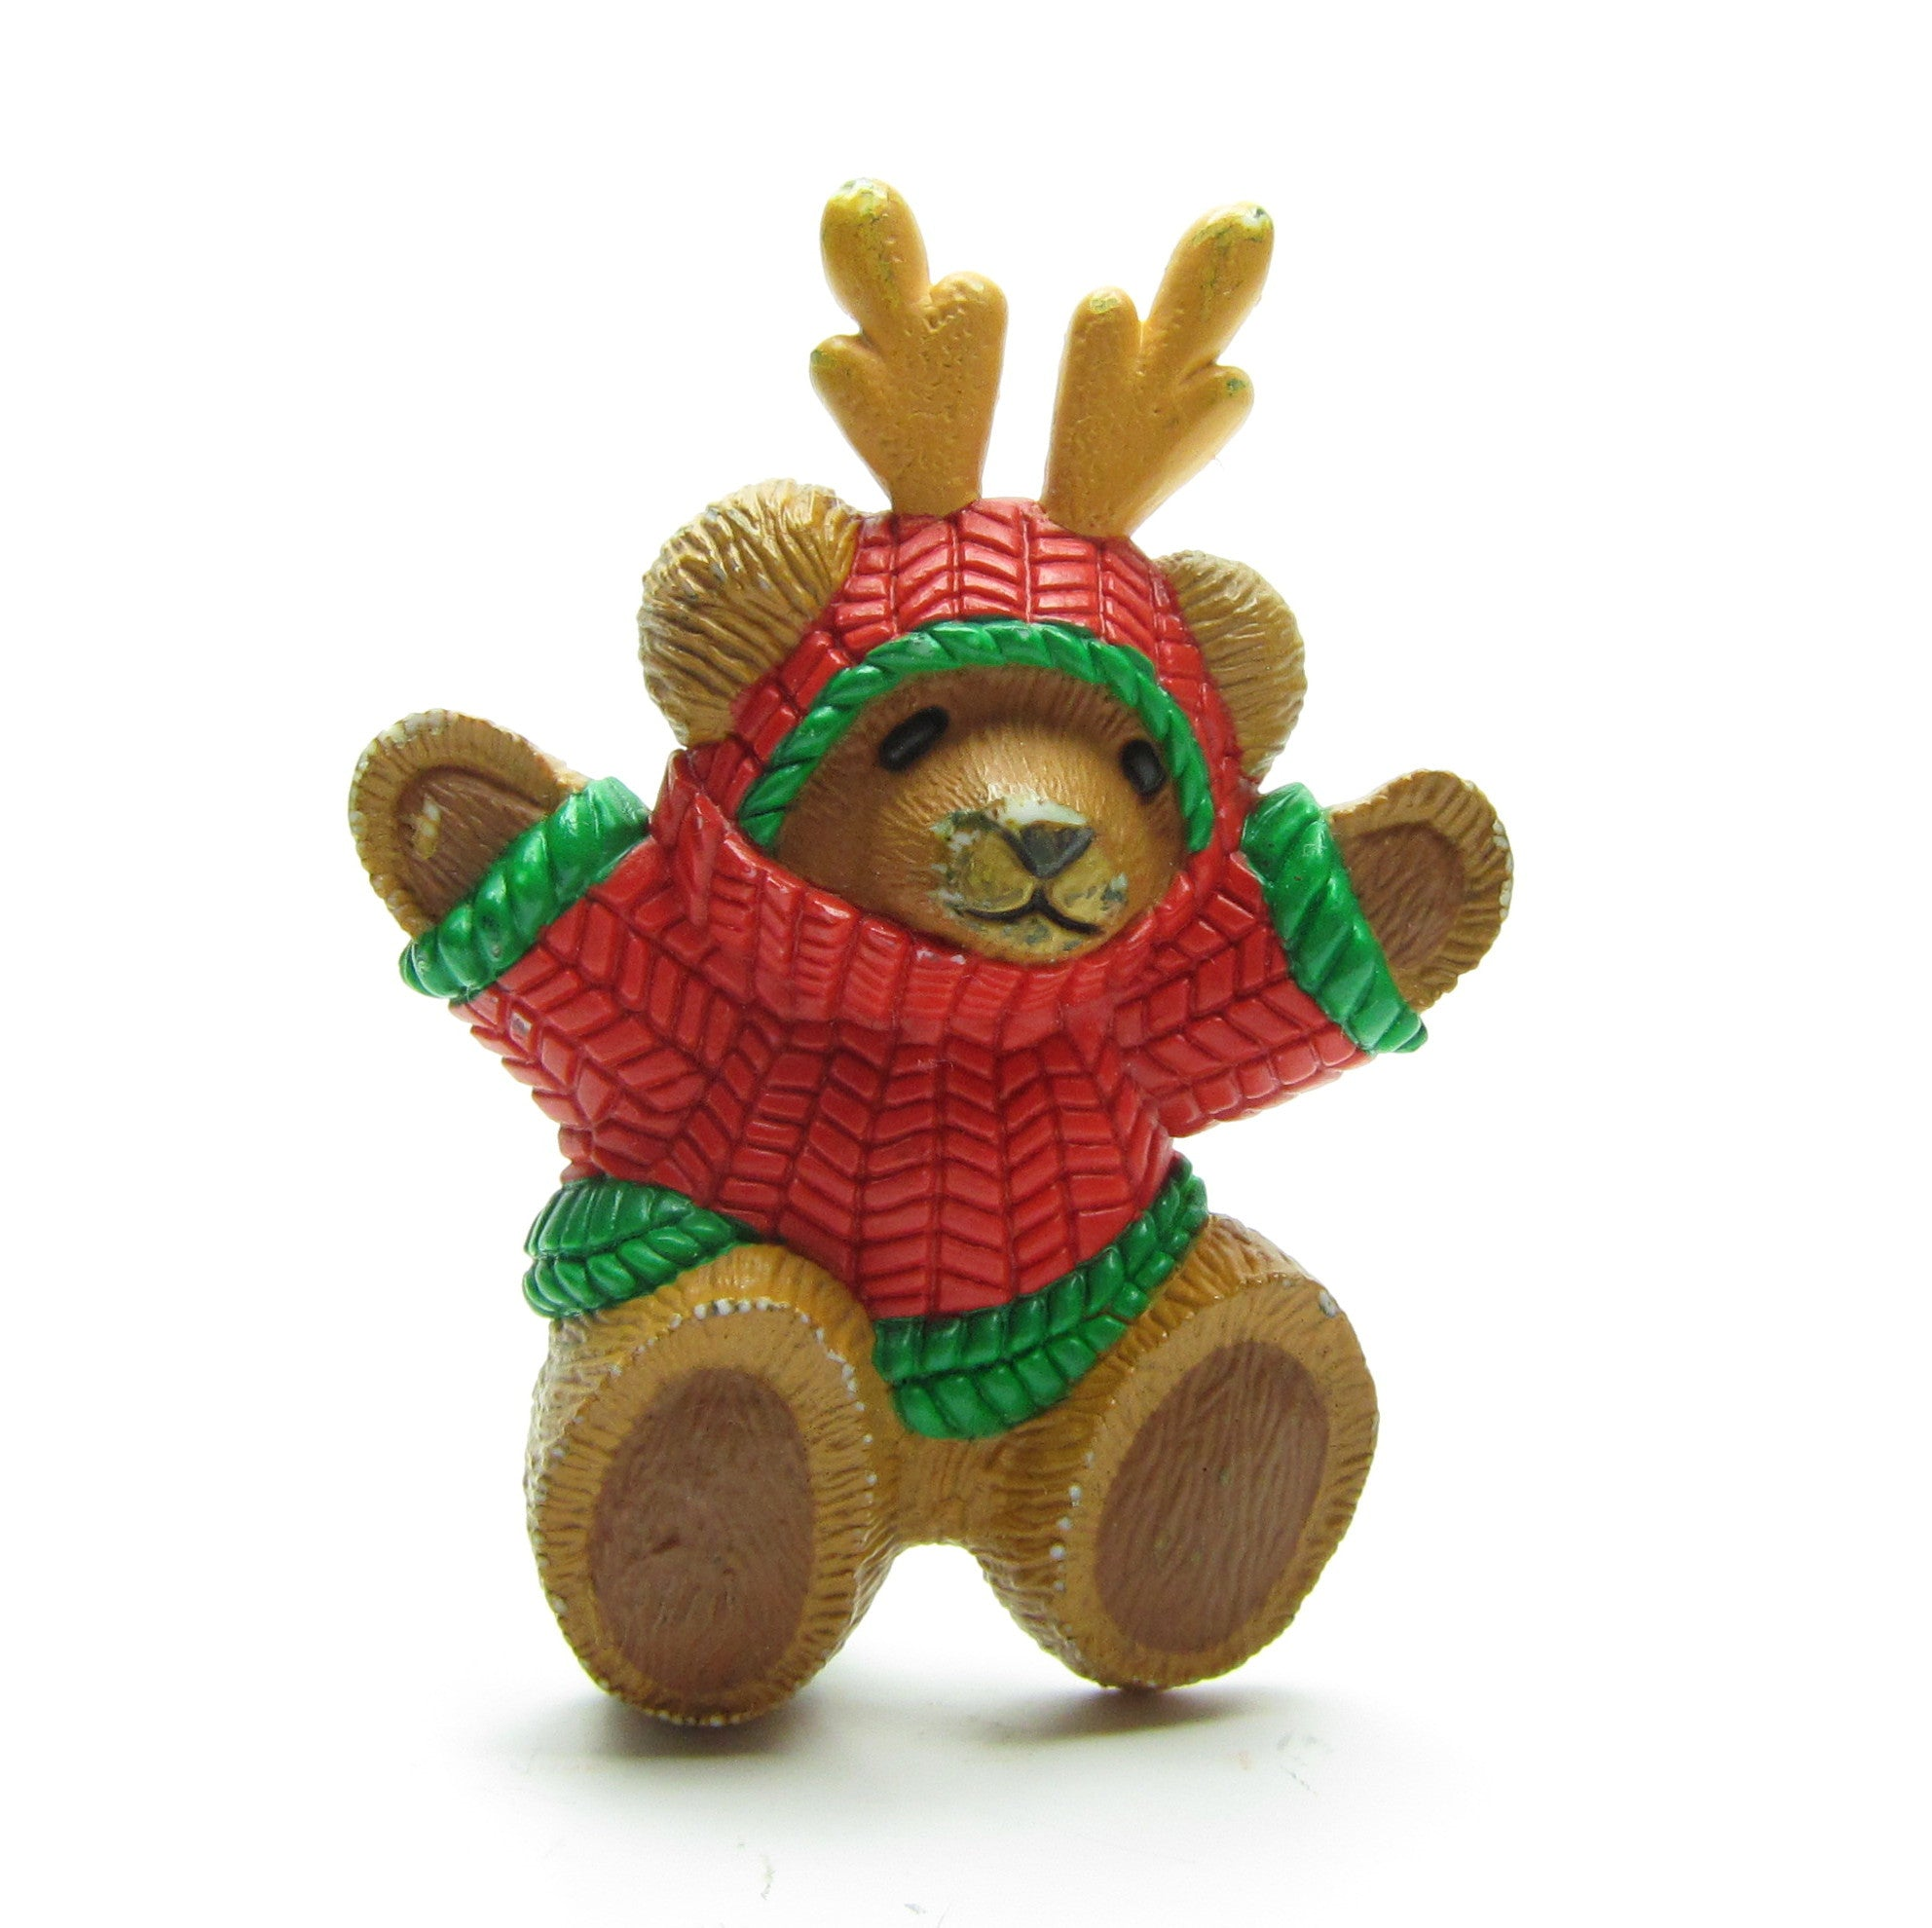 Hallmark teddy bear in Christmas sweater pin with antlers